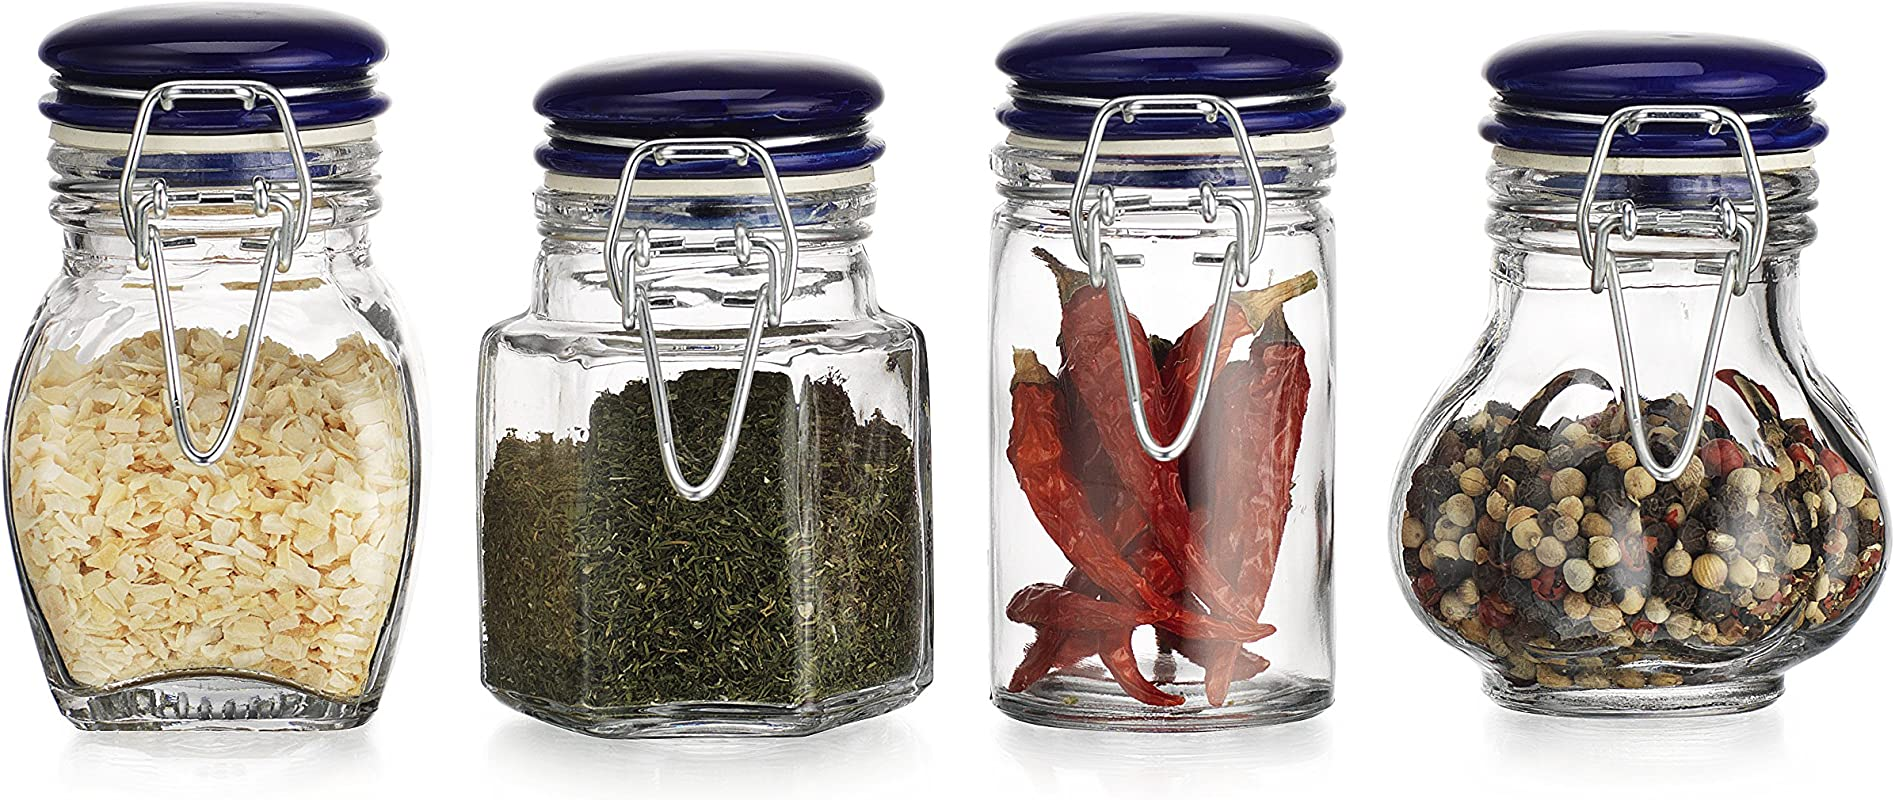 HC Classic Home Quality Airtight Assorted Shape Glass Spice Jar Hermetic Seal Bail Trigger Jar With Lid Set Of 4 Blue